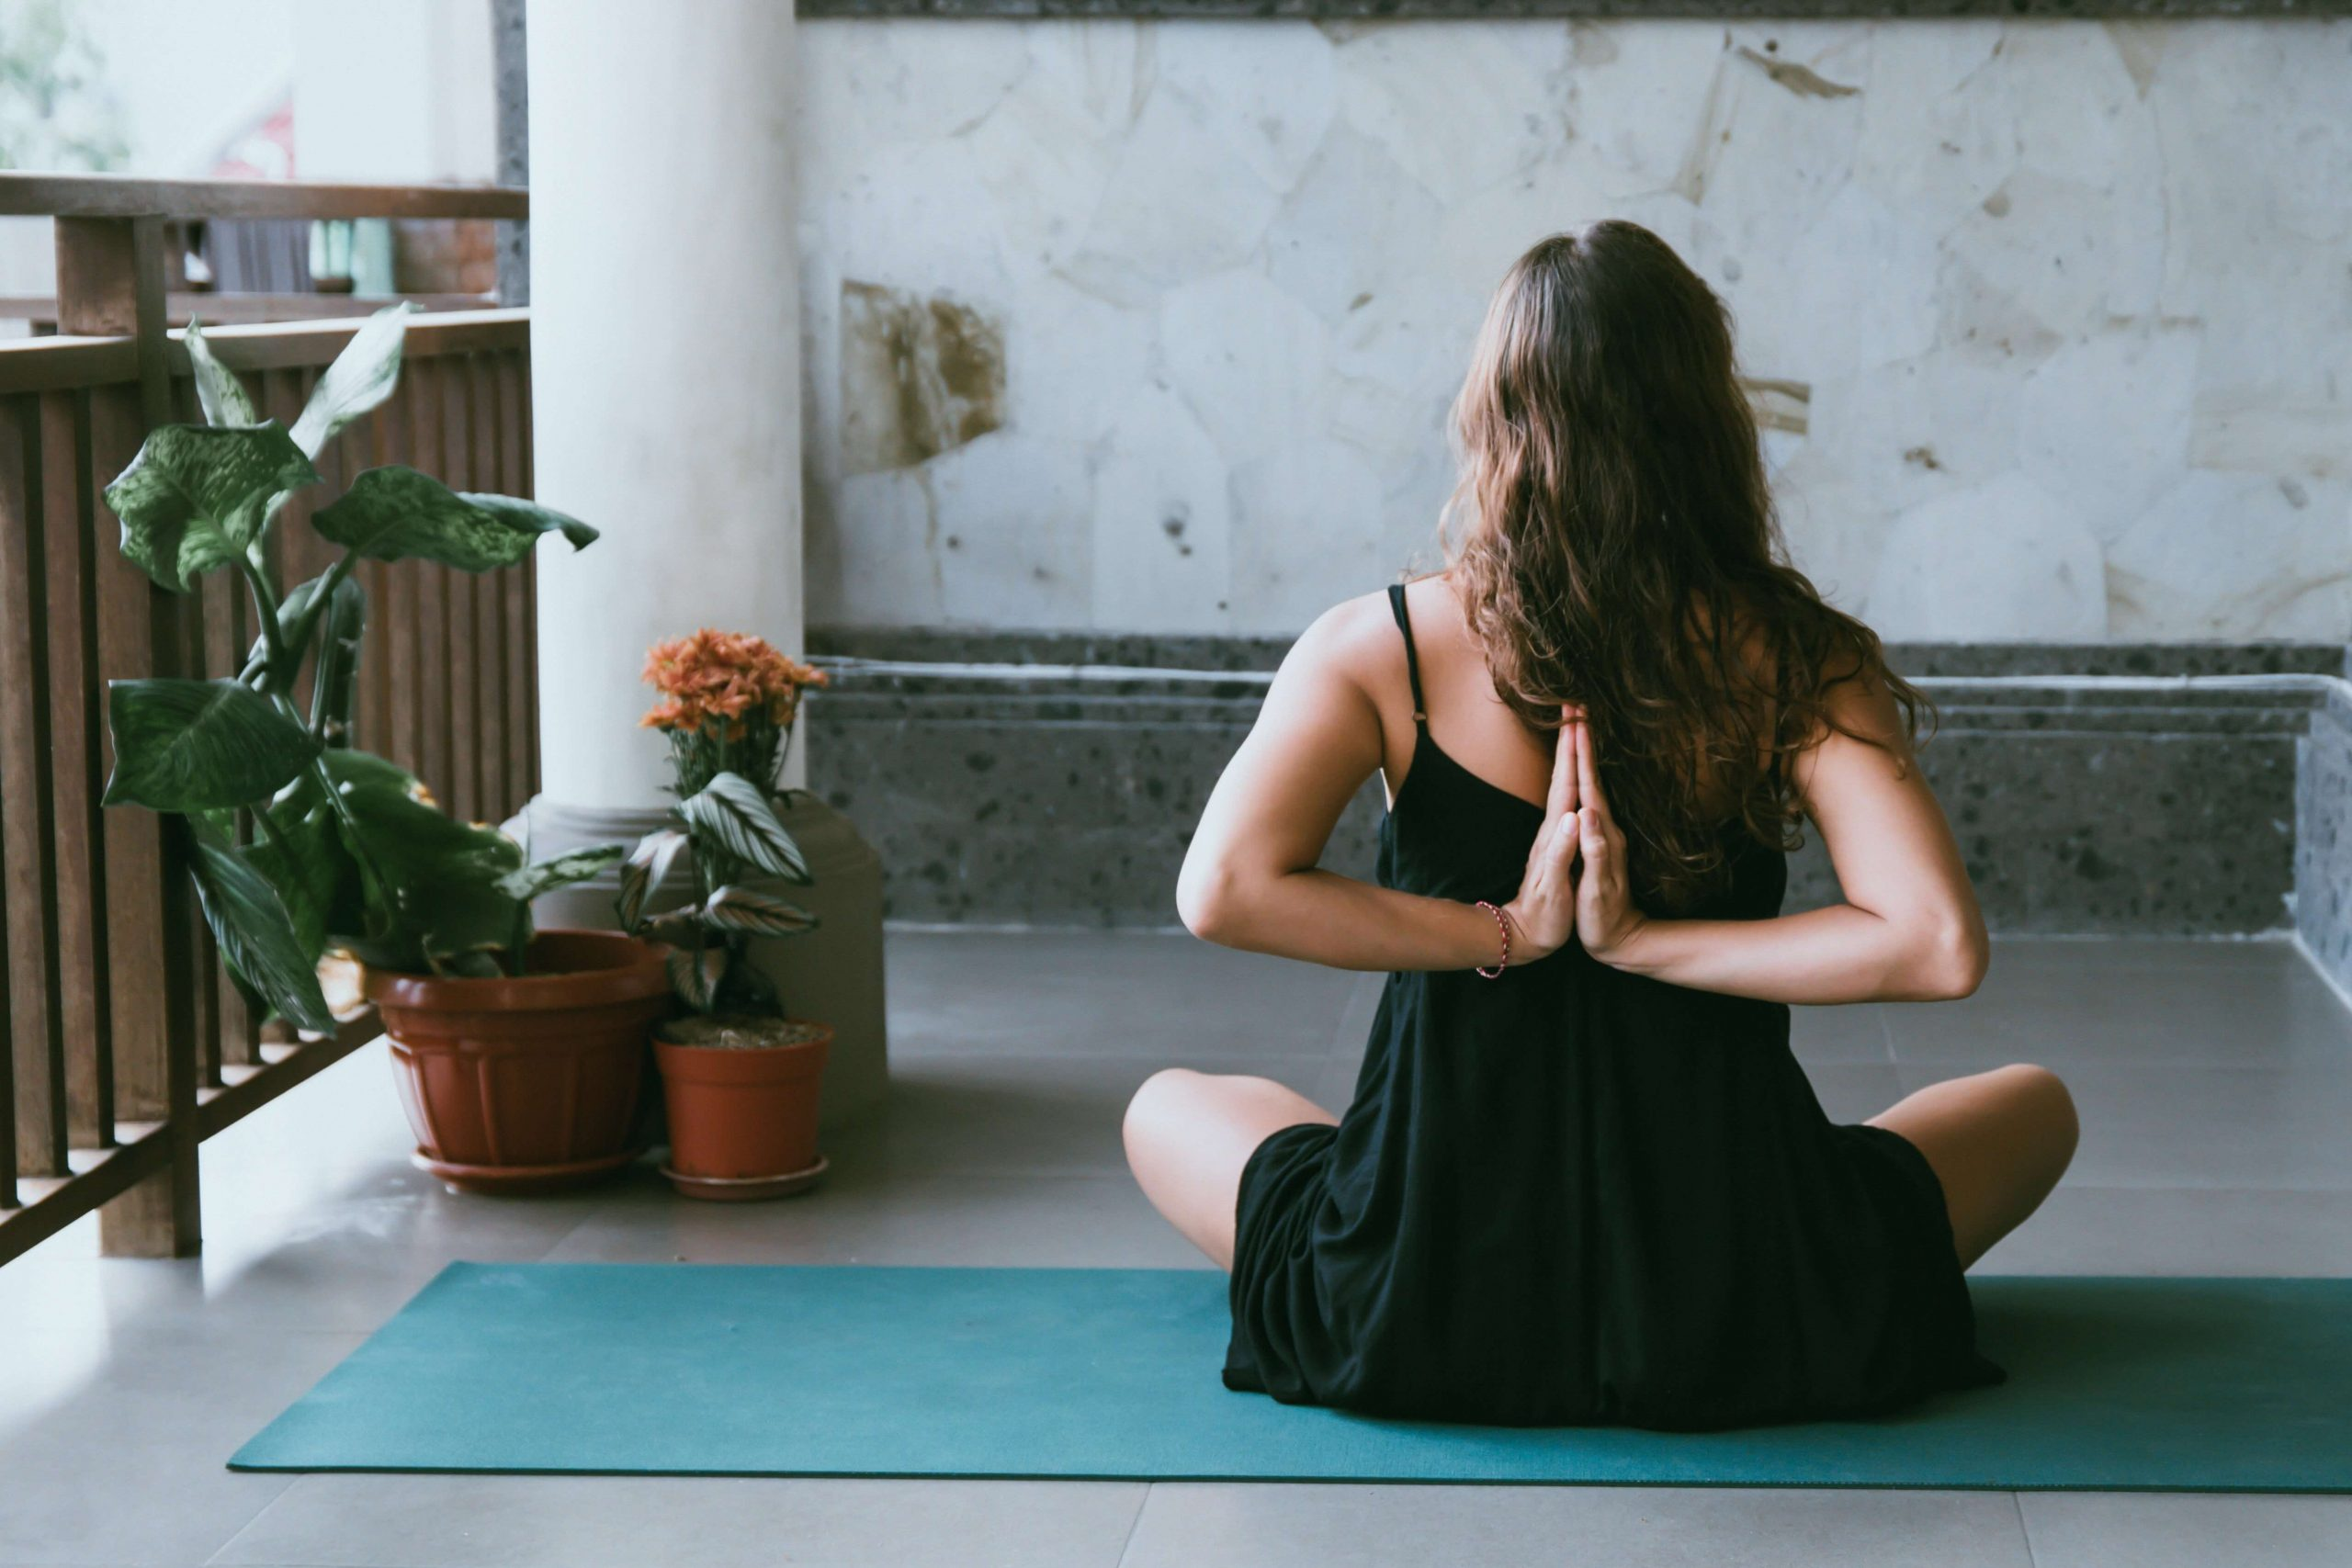 Can Meditation Help Your Relationship?